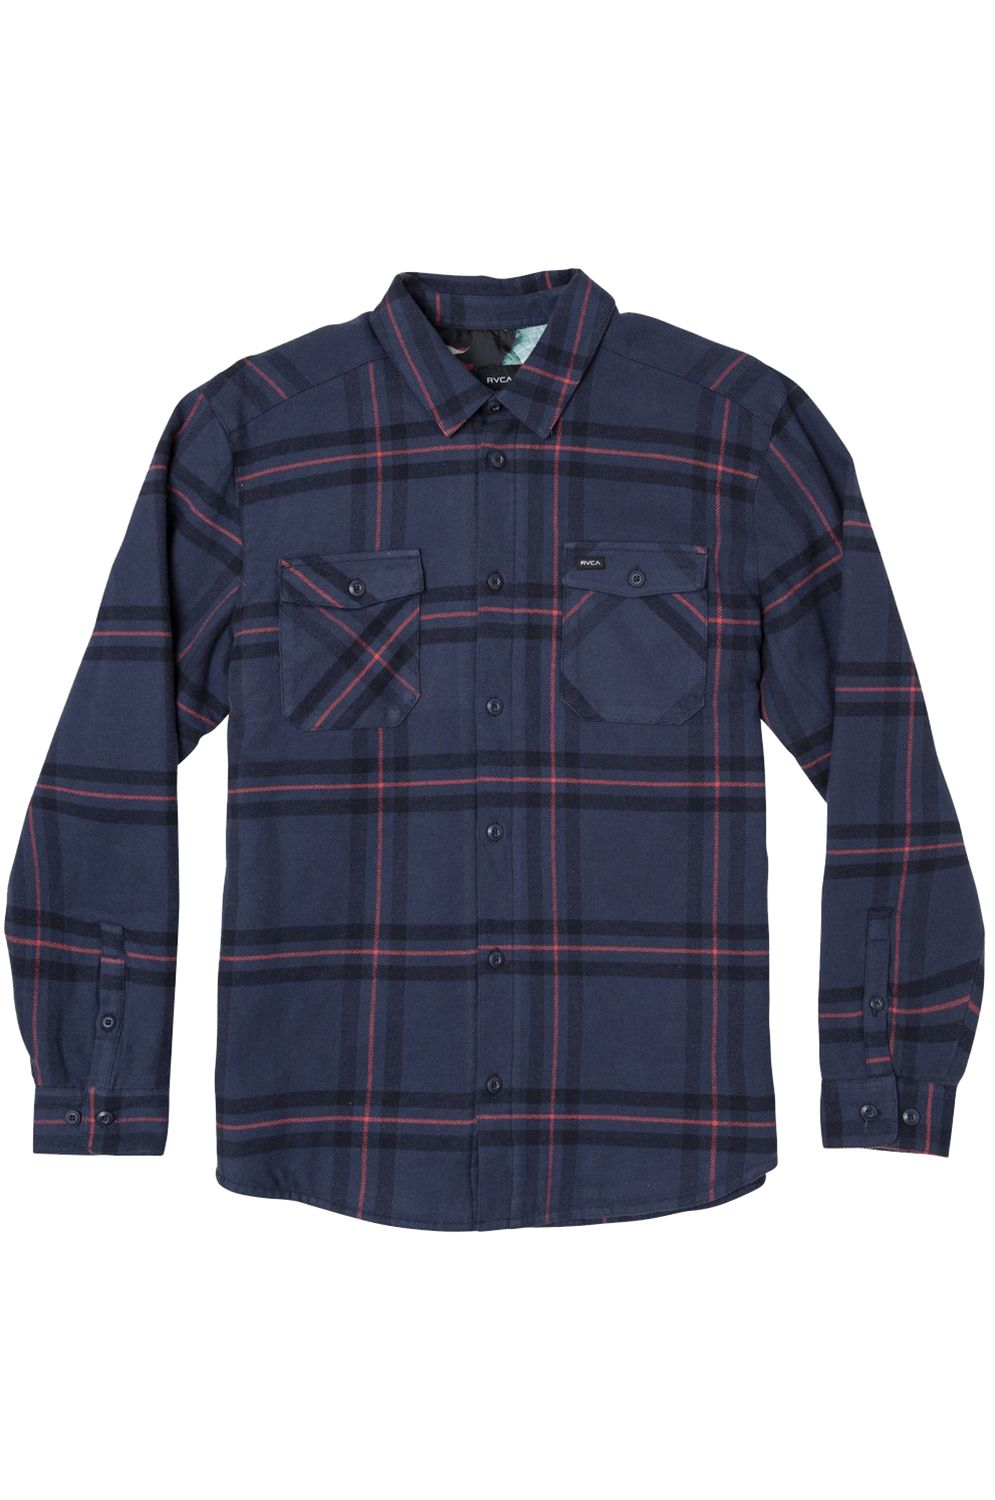 RVCA Shirt YIELD FLANNEL Navy